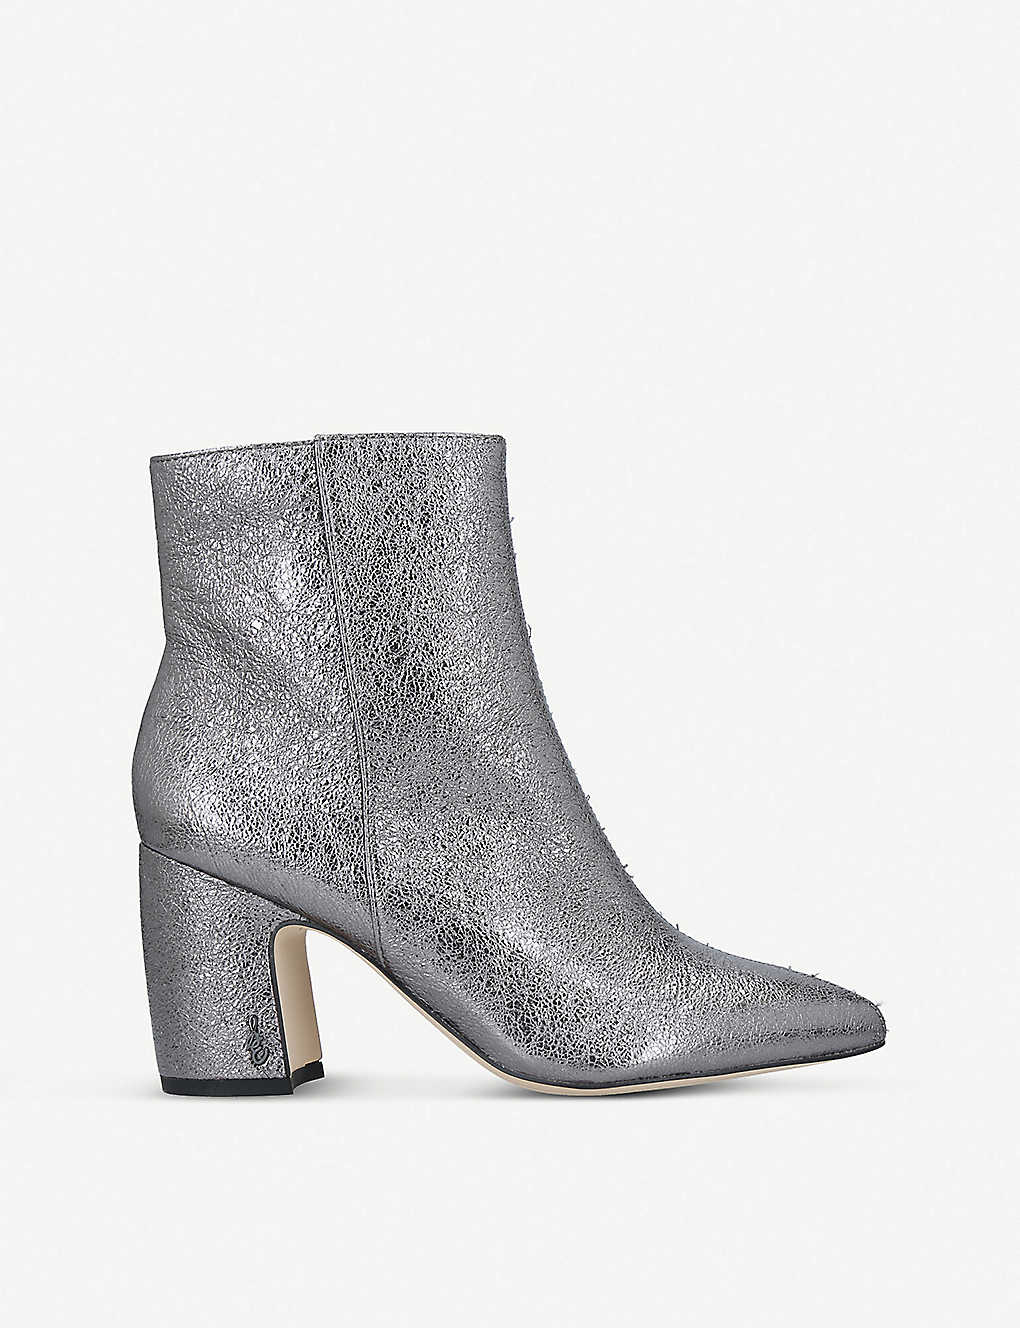 71c05f52199 SAM EDELMAN - Hilty suede ankle boots